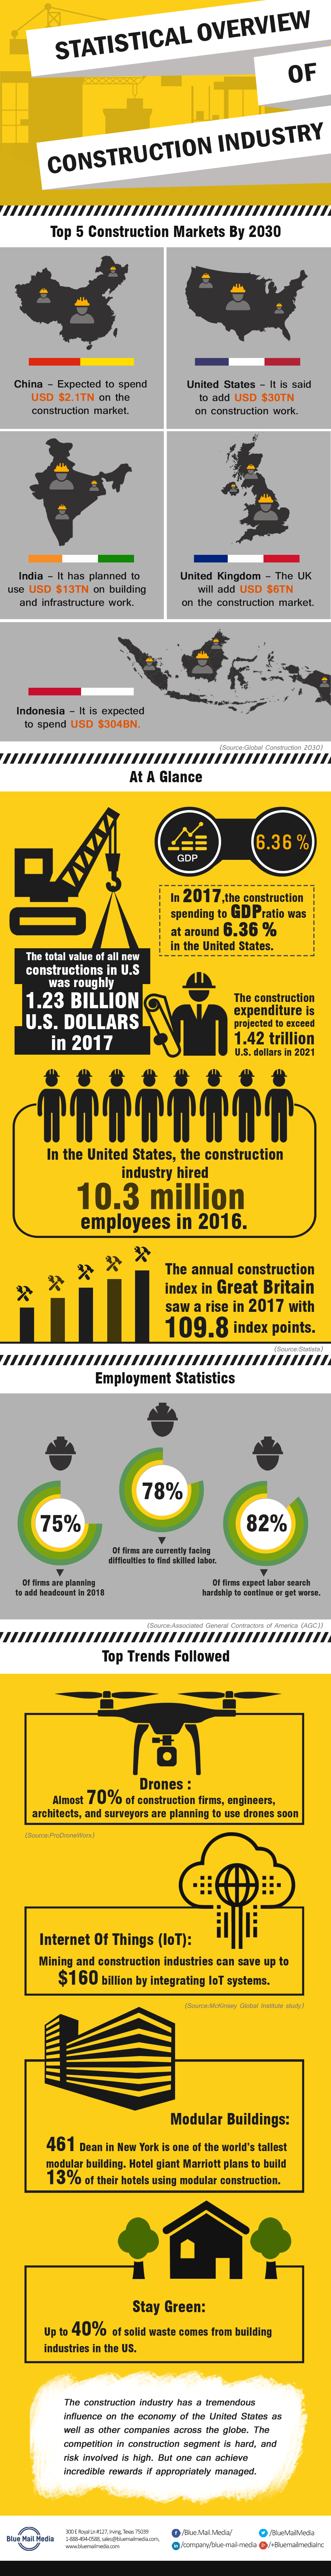 Statistical Overview of Construction Industry